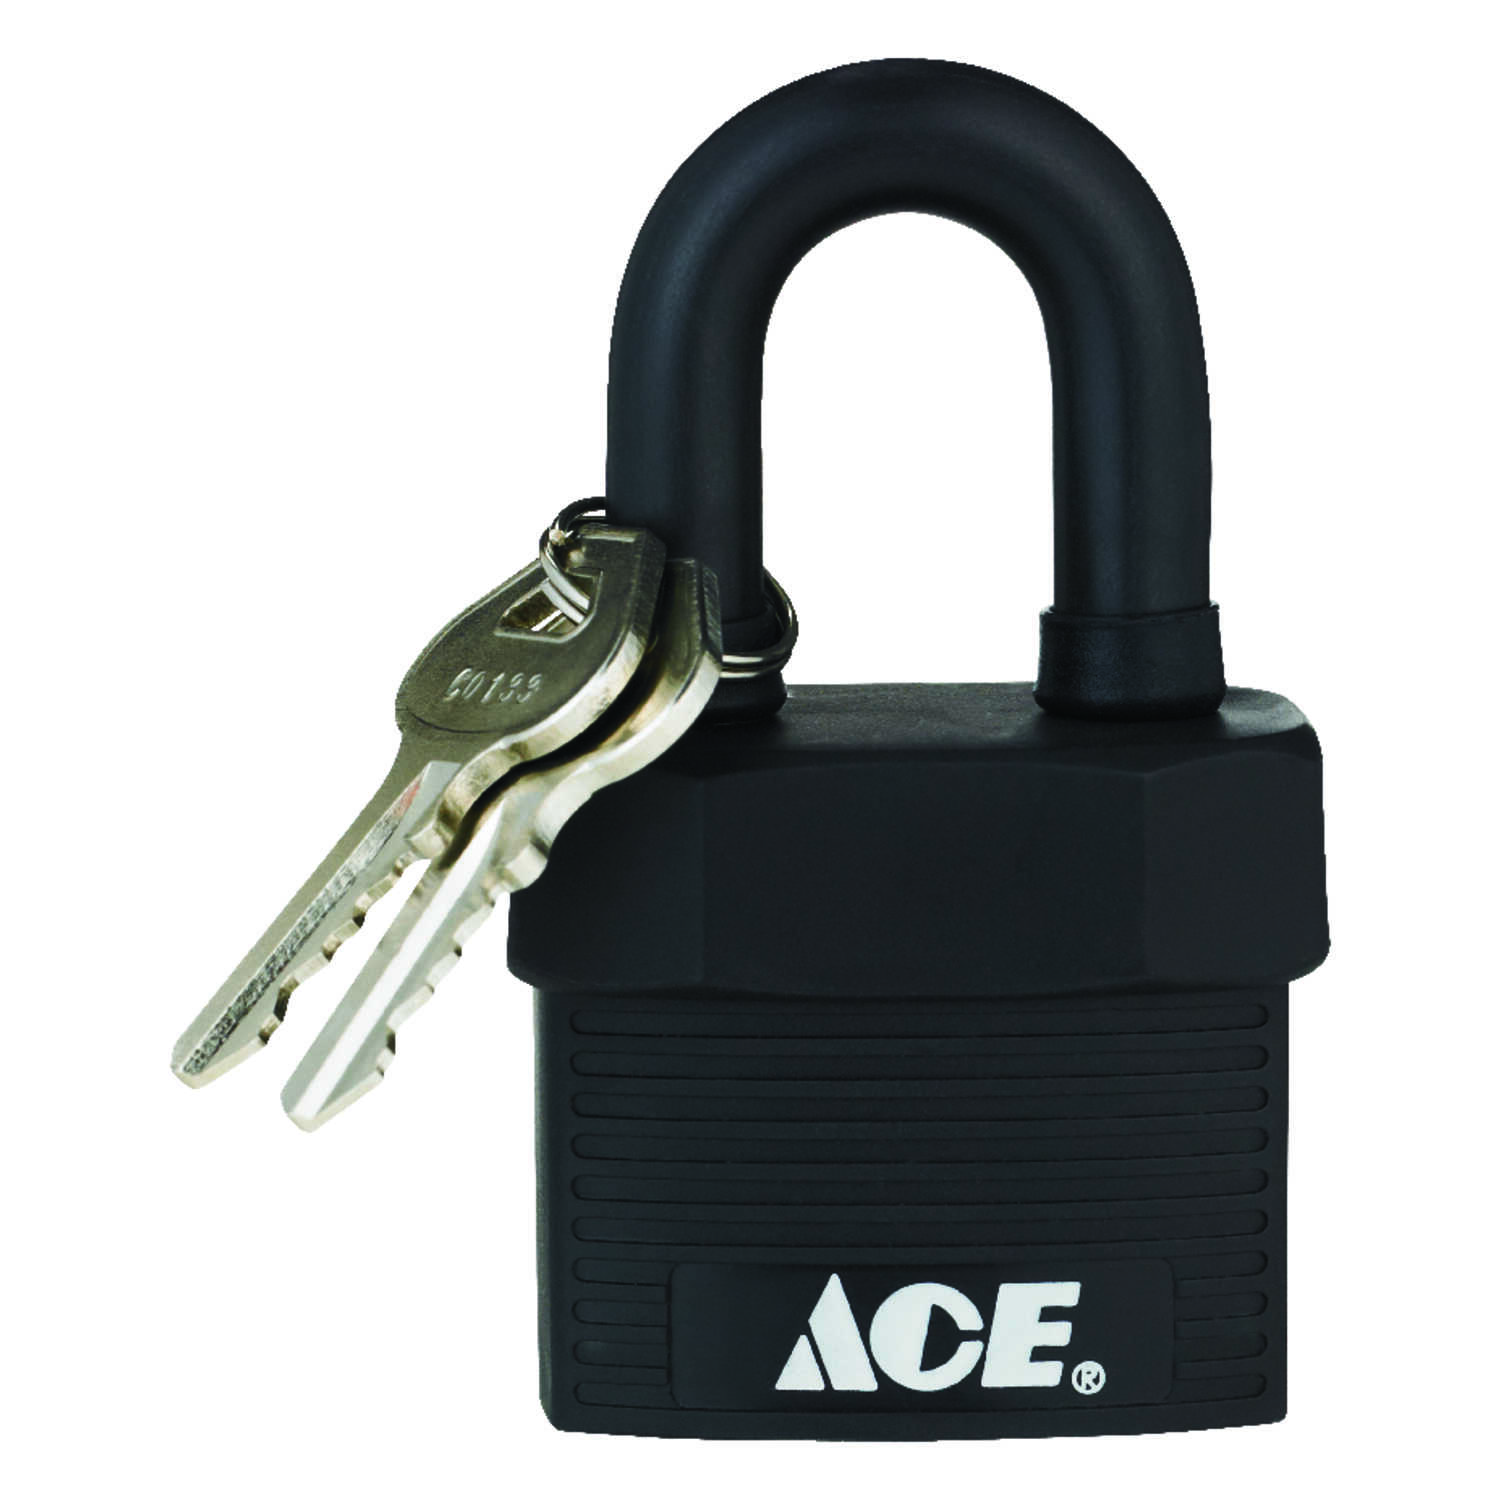 Ace  1-5/8 in. H x 1-3/4 in. W x 1-1/8 in. L Steel  Double Locking  Padlock  1 pk